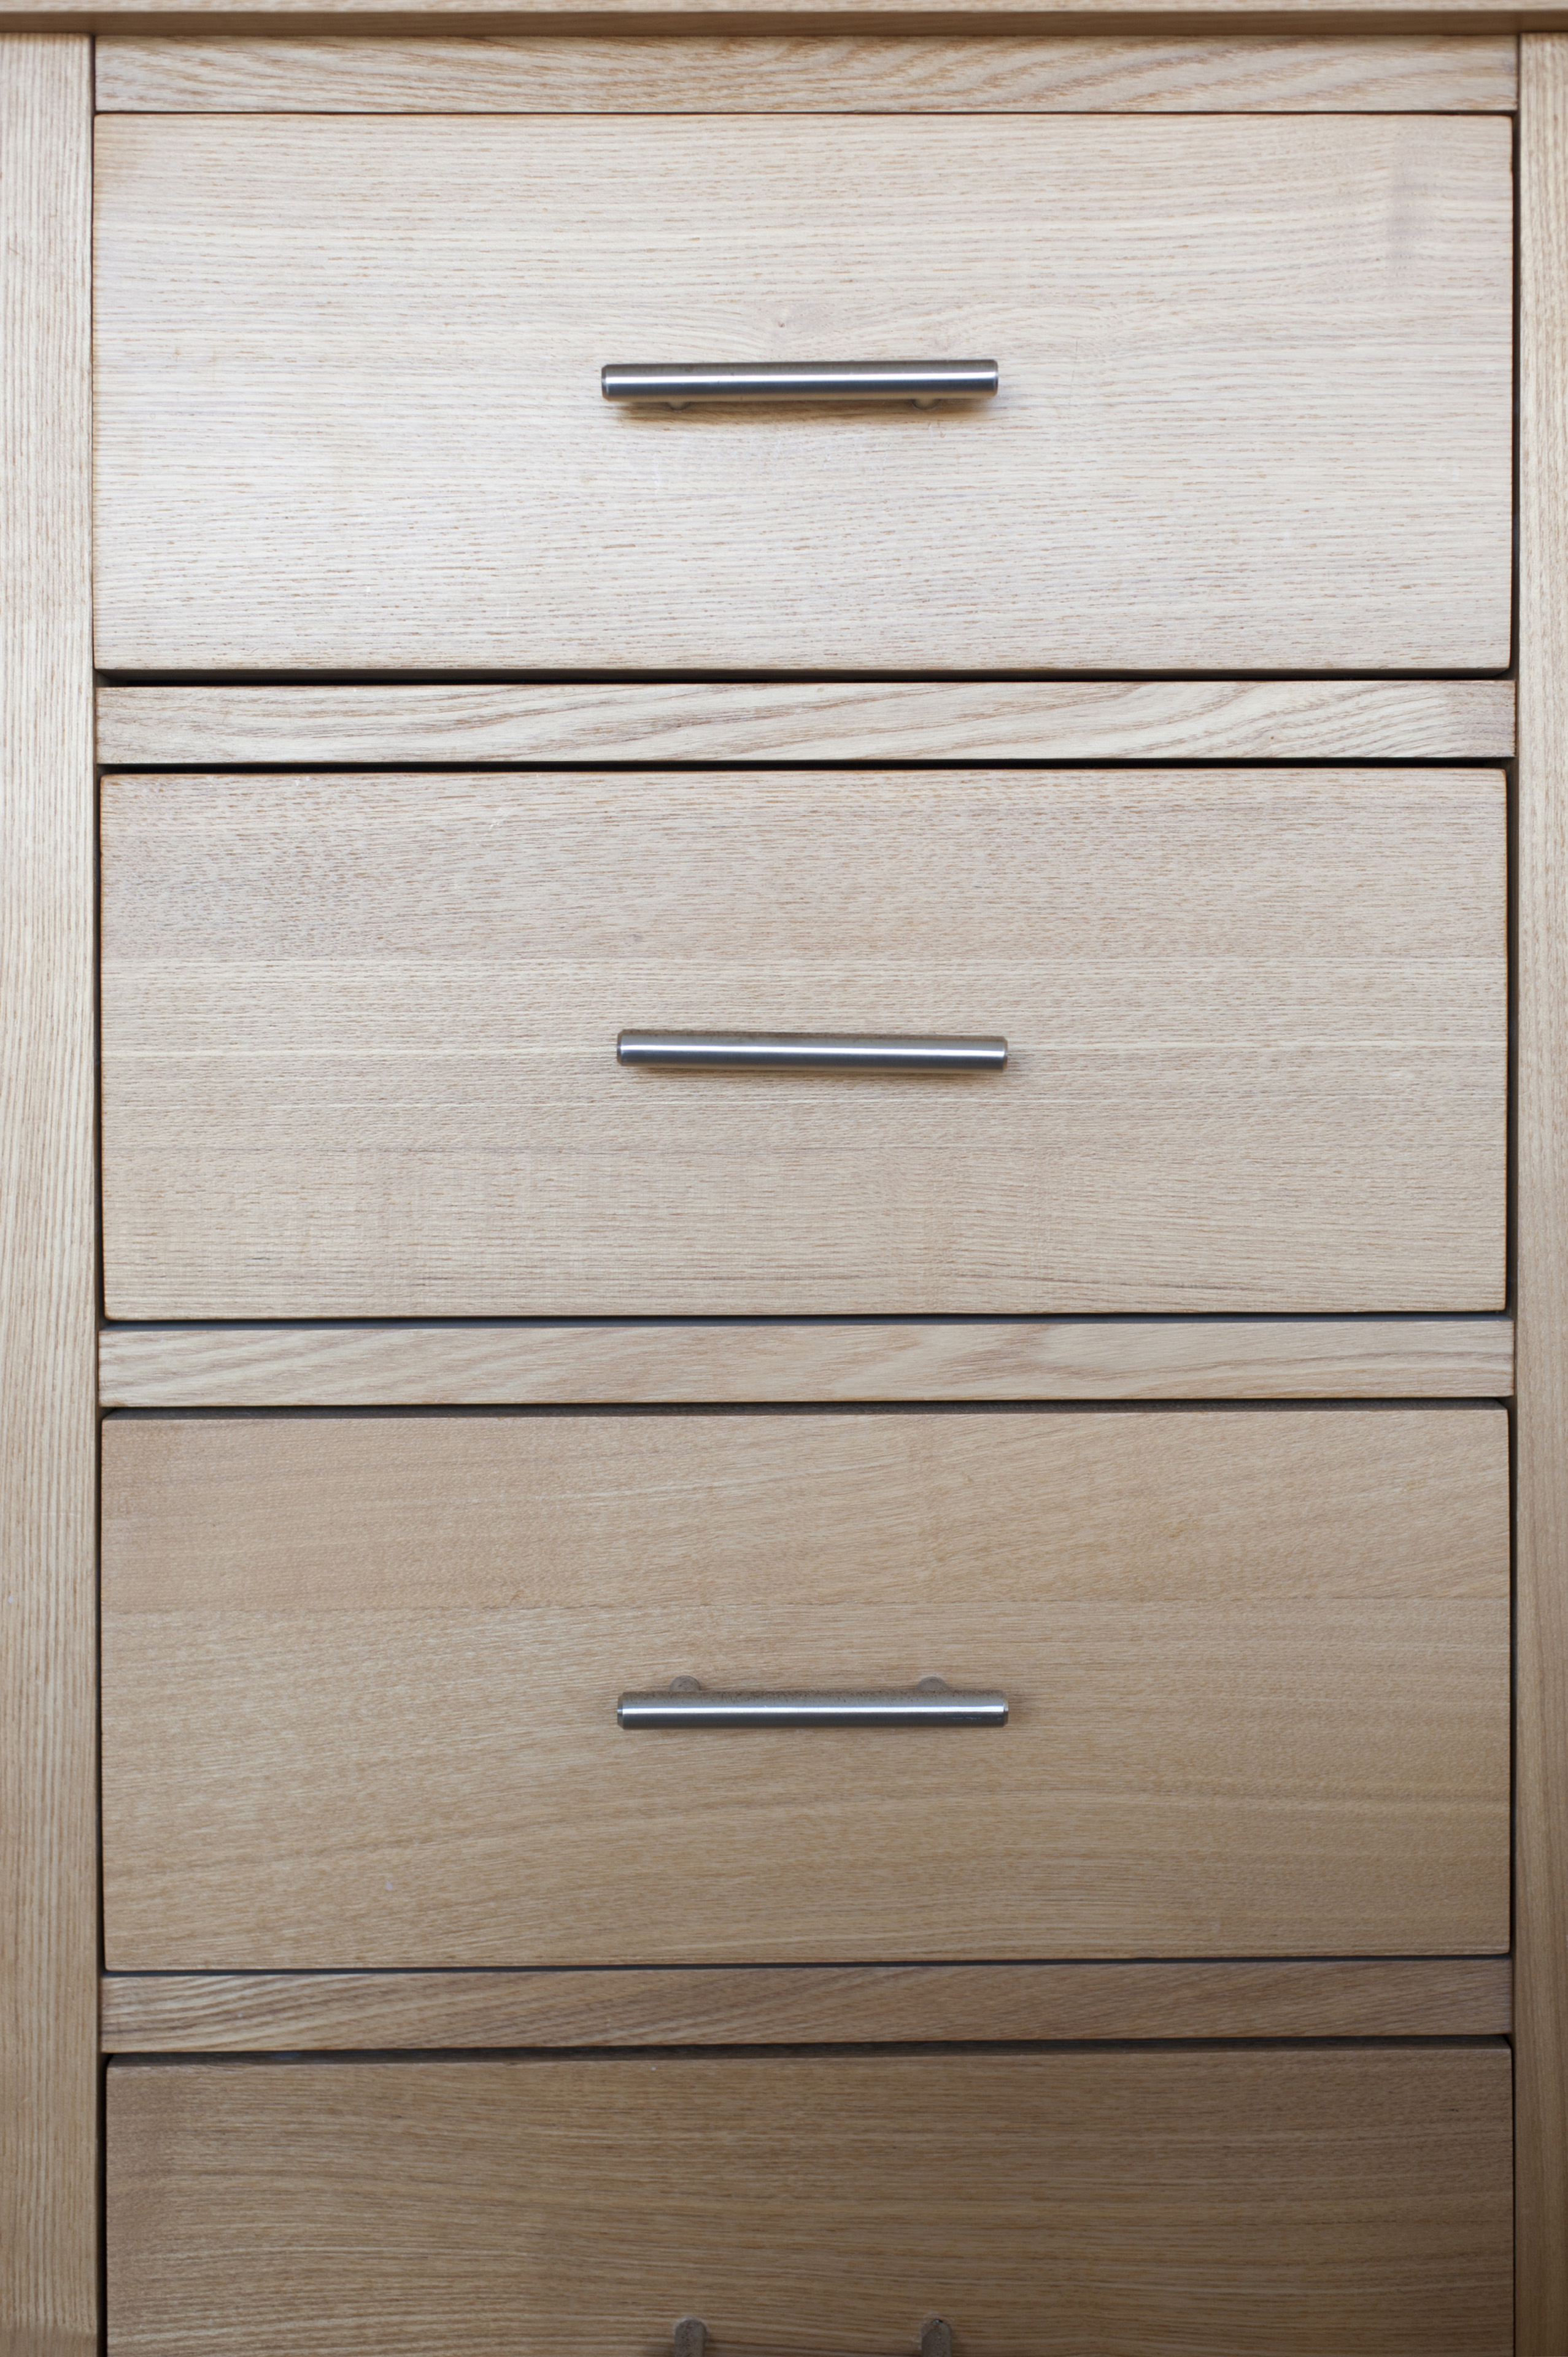 Close up full frame view of a small natural wood chest of drawers for household storage